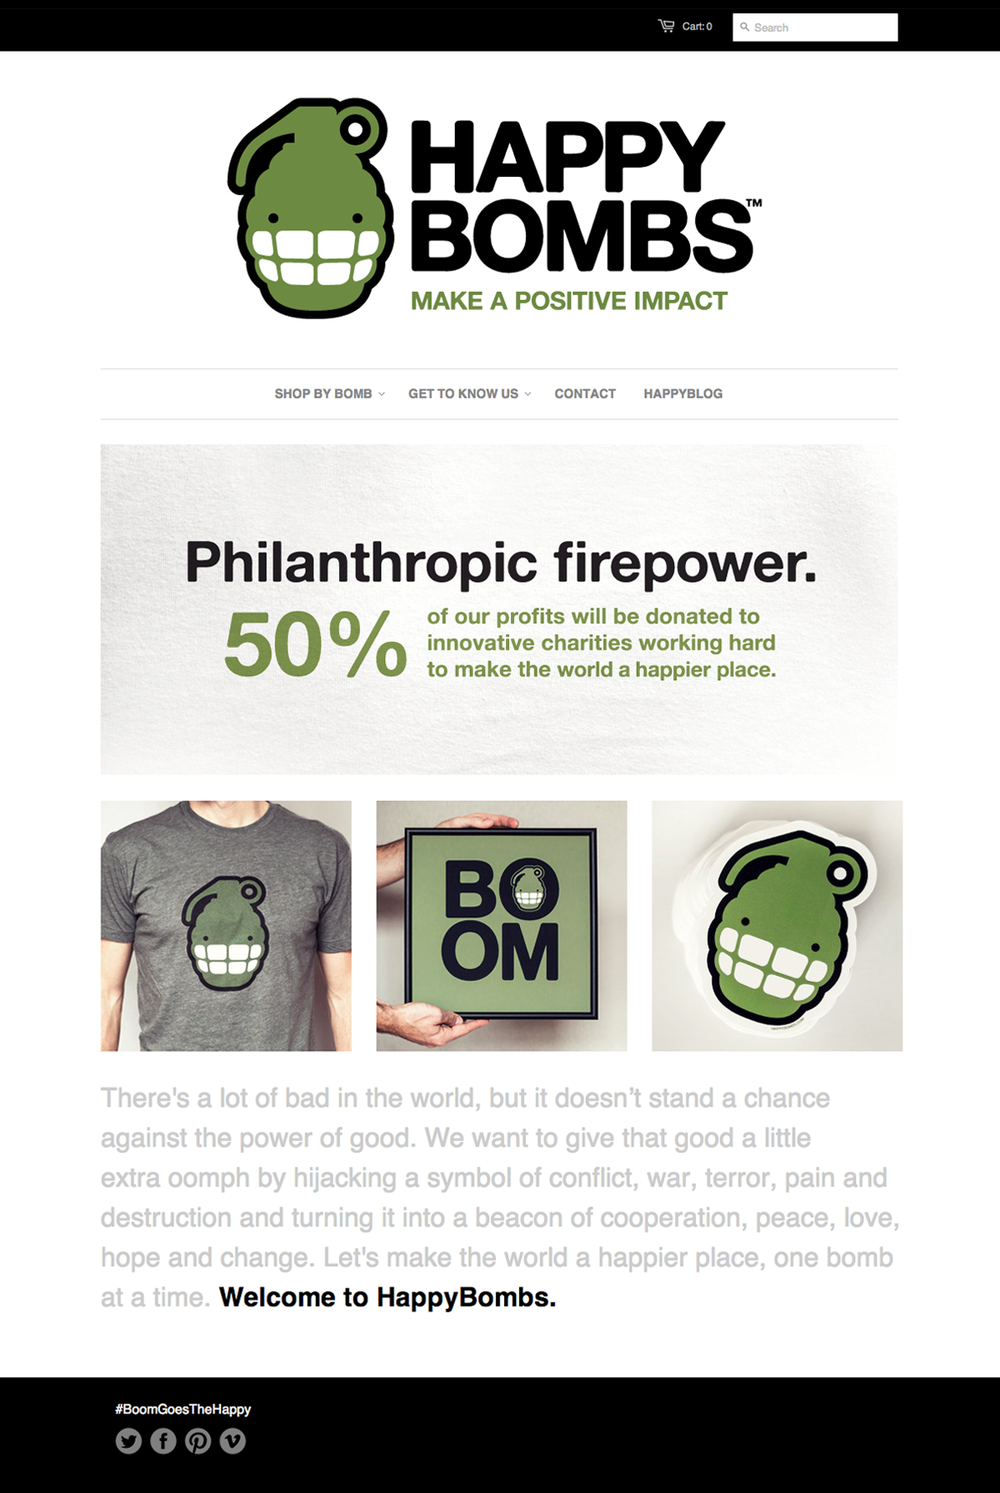 HappyBombs.com Website Desgin